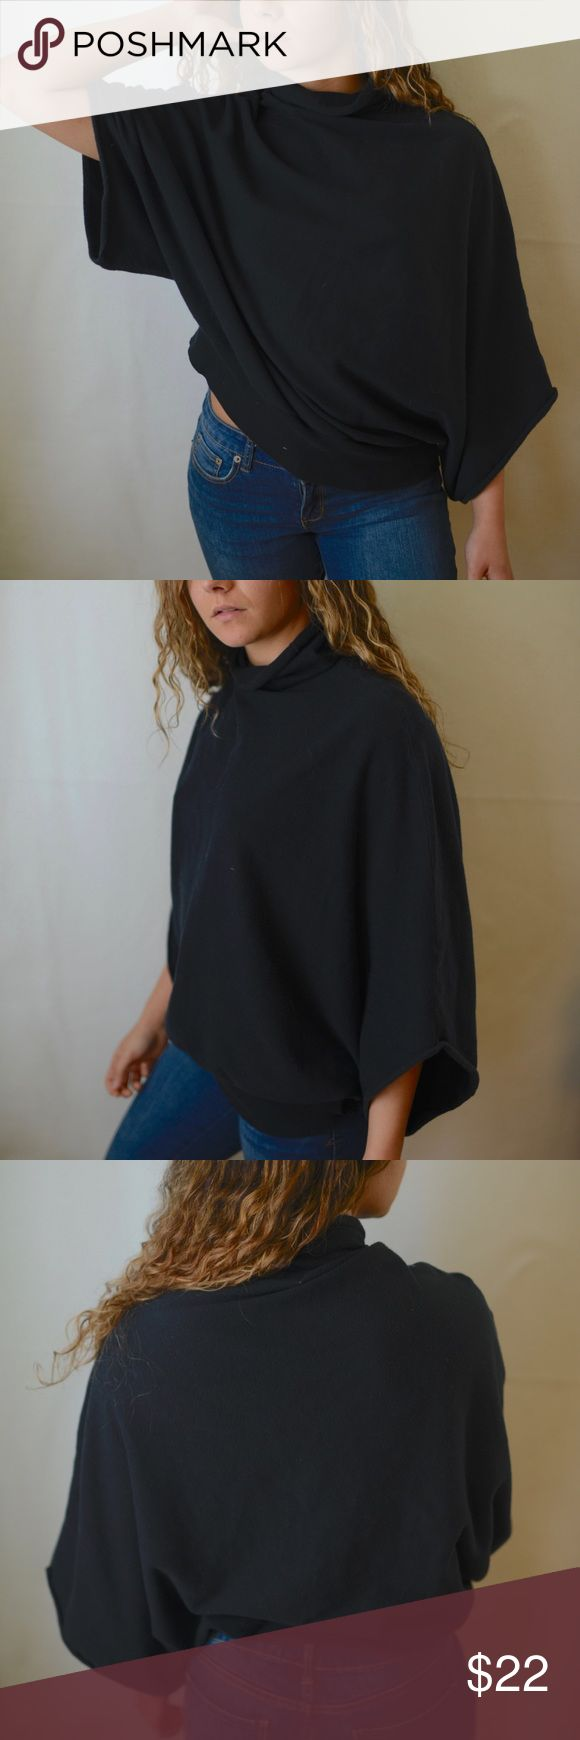 Cortefiel Black Dolman Turtleneck EUC black top from Spanish designer Cortefiel. Fits loose, slightly cropped with wing sleeves. Cape like effect. Comfy cotton material. Very minor pilling as shown  Bundle to save!!! Cortefiel Tops